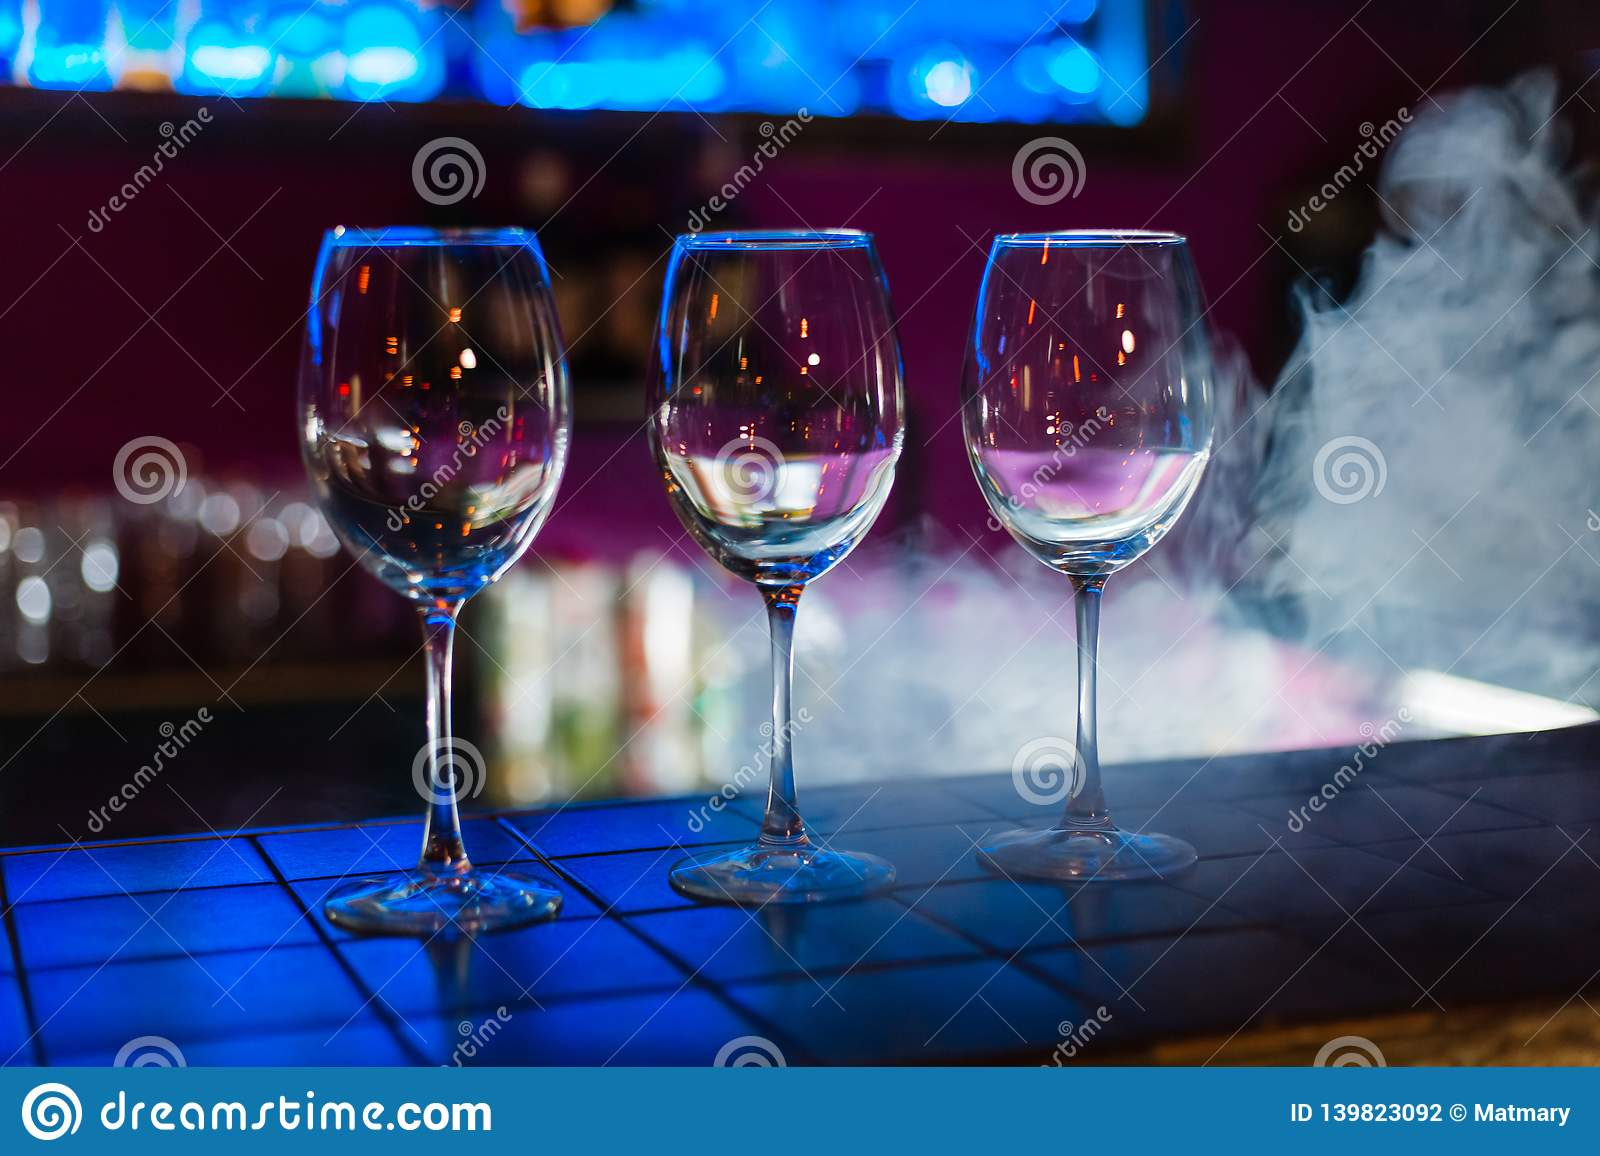 Empty wine glasses in row on bar or restaurant